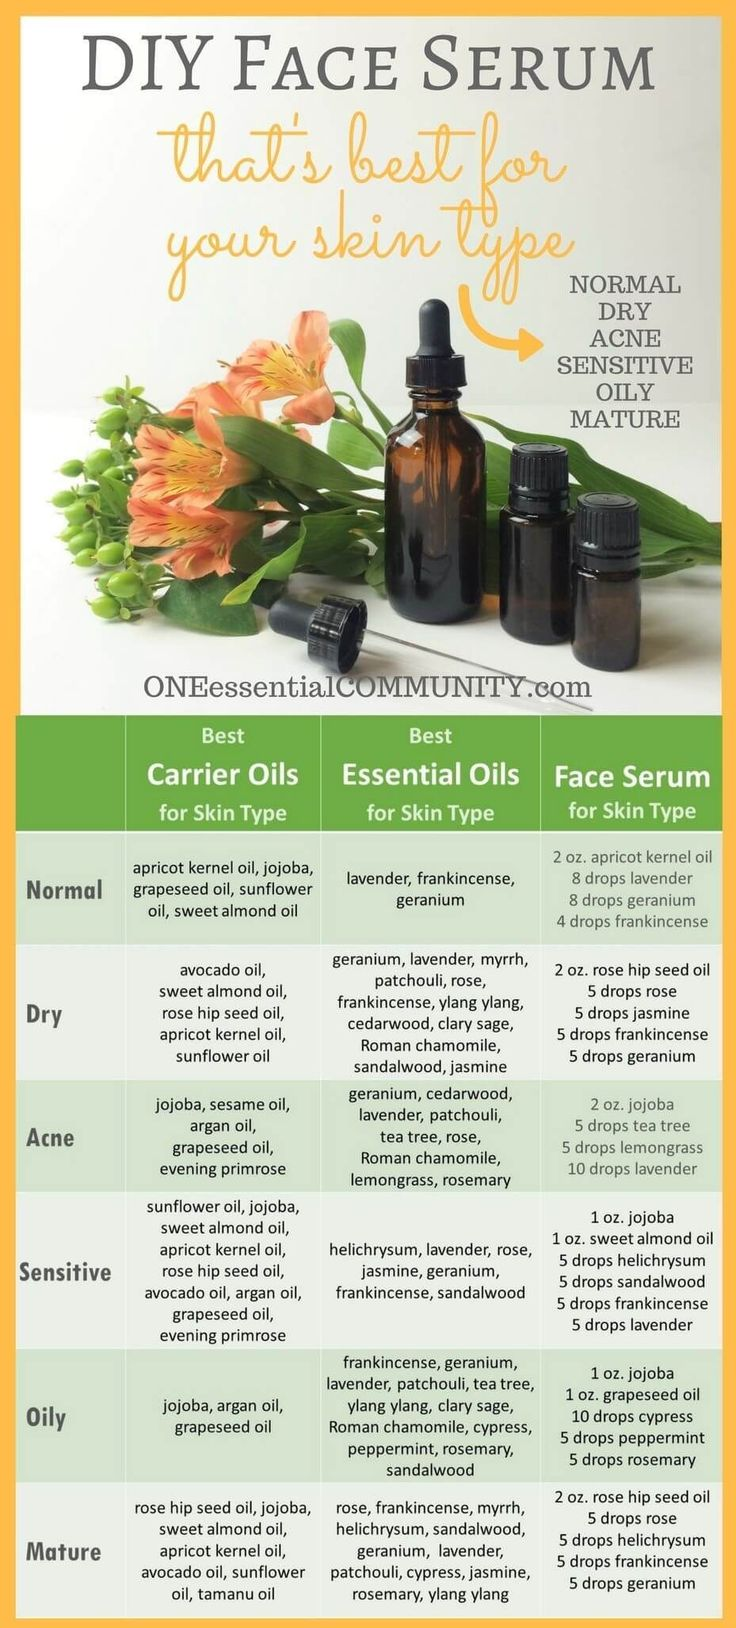 Easy 2-ingredient DIY Face Serum with Essential Oil -- Love that the recipe can be customized for your skin type {normal, dry, acne, sensitive, oily, mature} we need proper skin care treatment naturally Check here fo natural skin care http://skinremarkable.com/ ... Keeping your skin looking youthful, firm, and radiant!